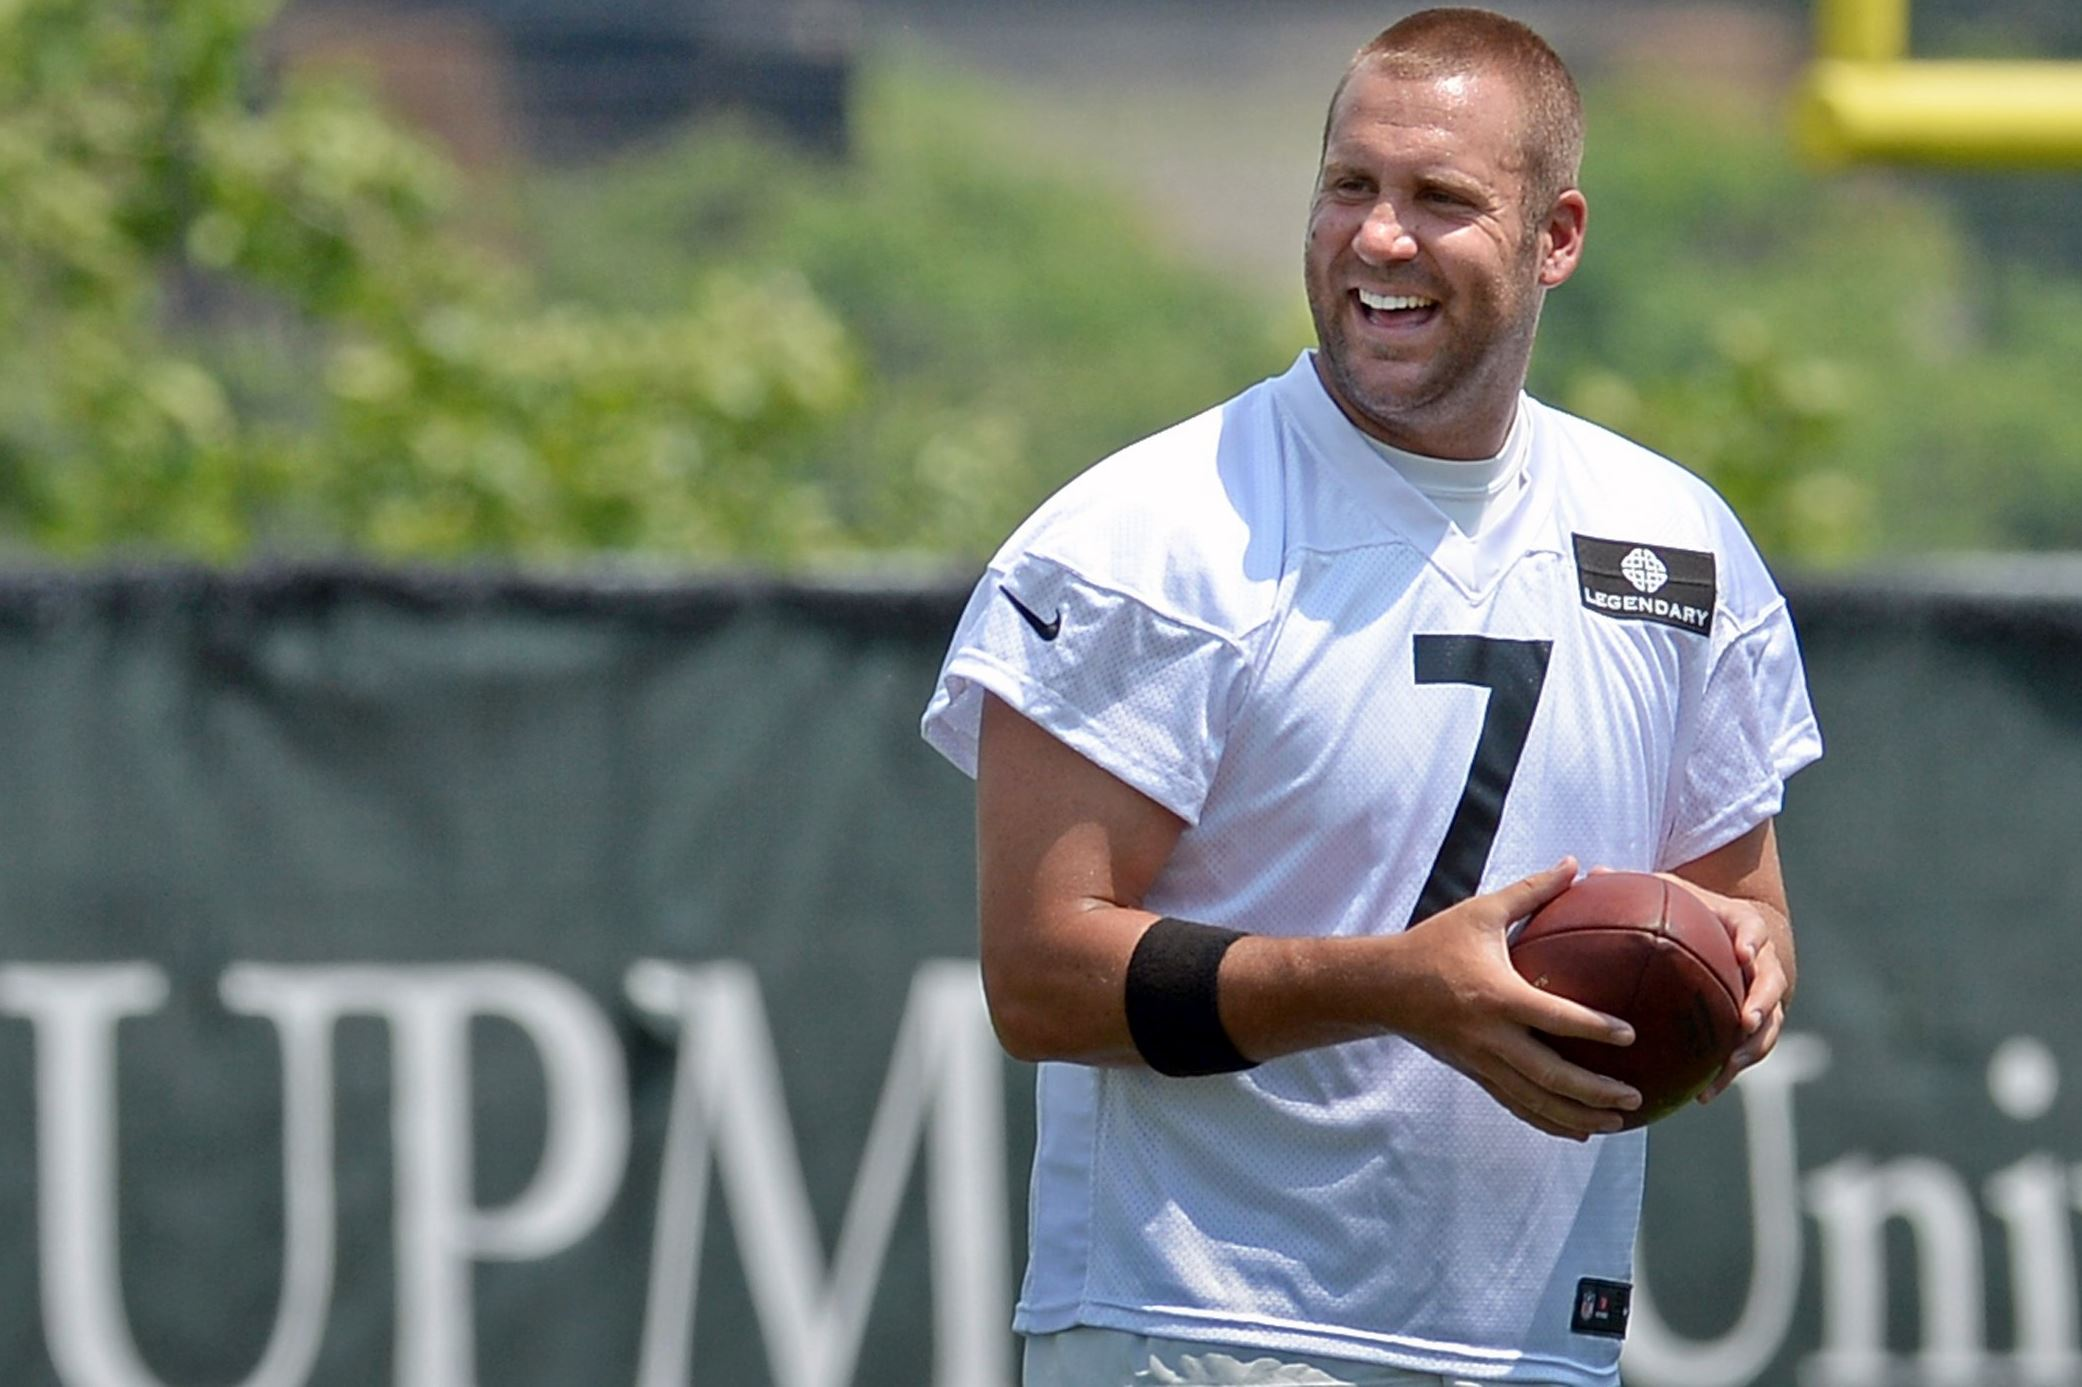 Quarterback ben roethlisberger takes part in minicamp on the south